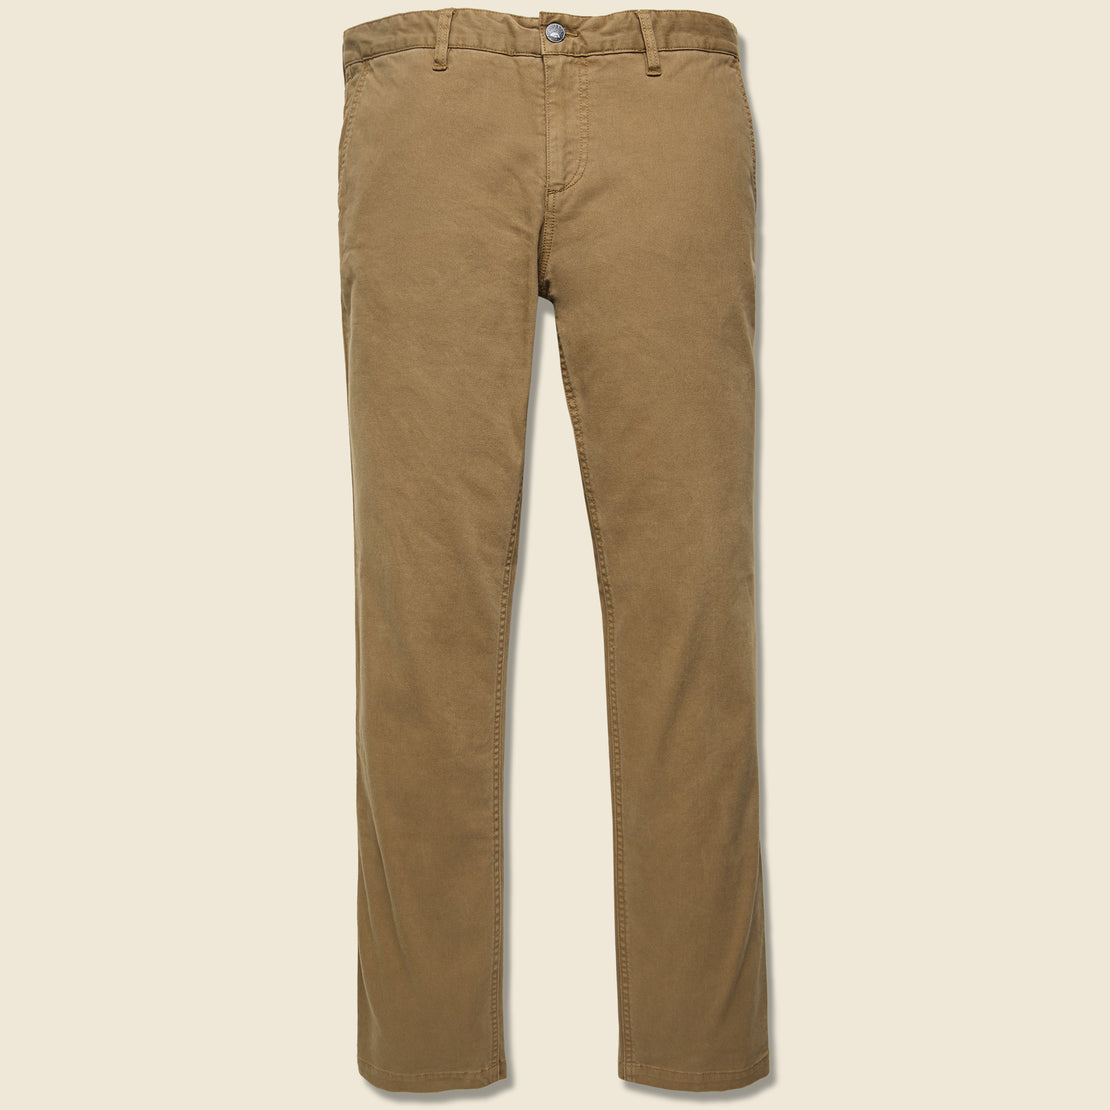 Faherty Comfort Canvas Trouser - Weir Brown